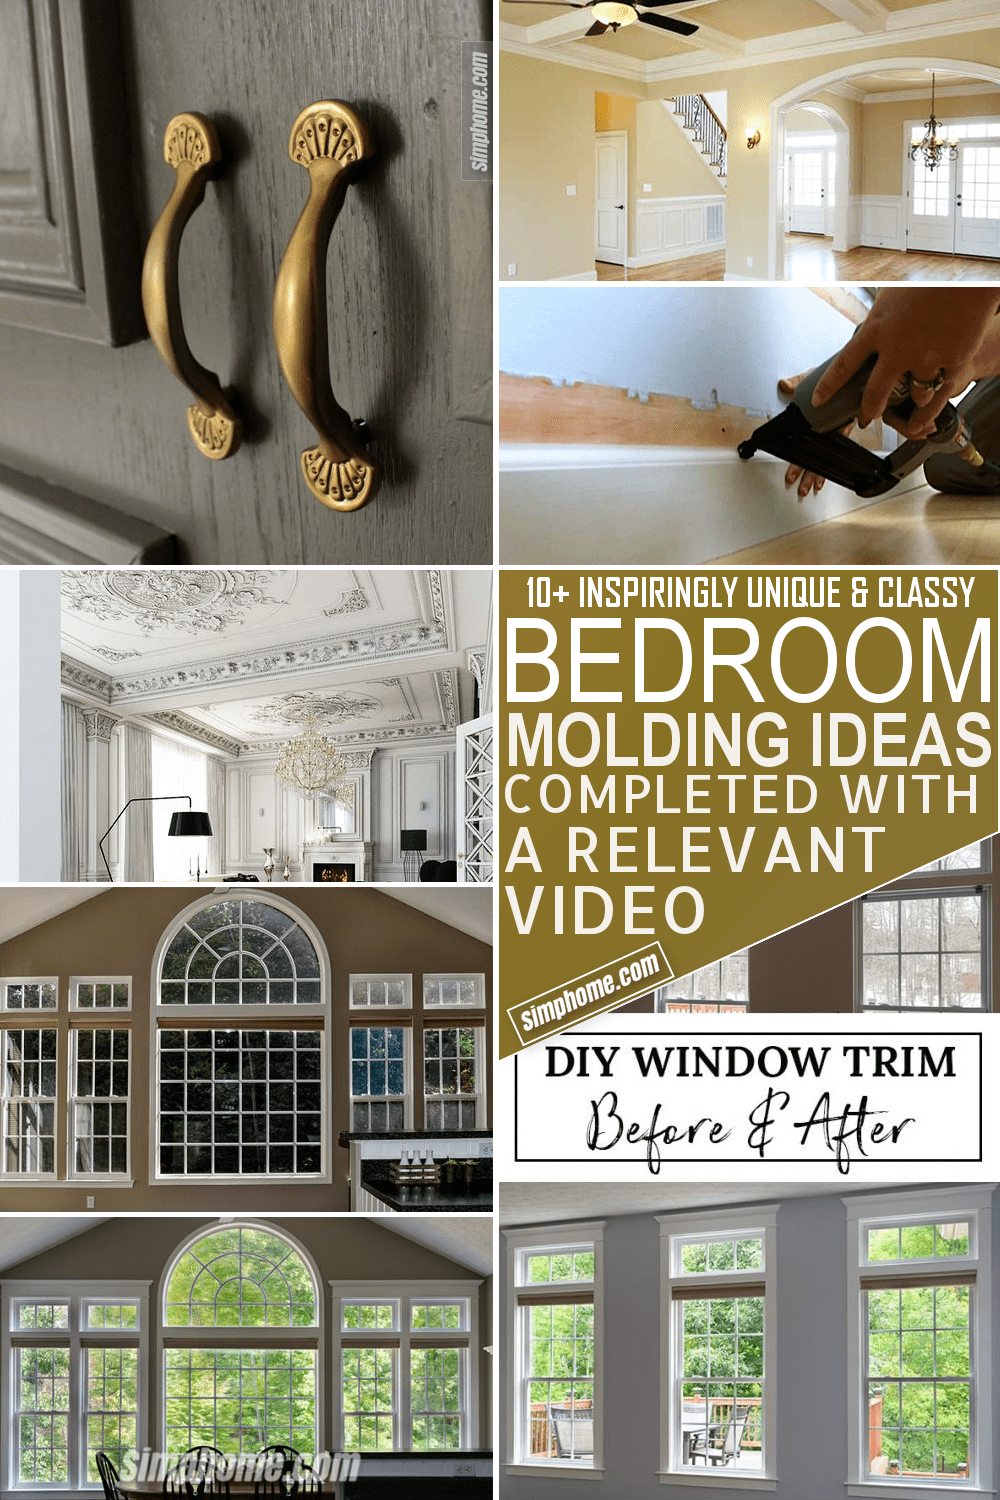 10 Bedroom Molding Ideas via Simphome Featured Pinterest